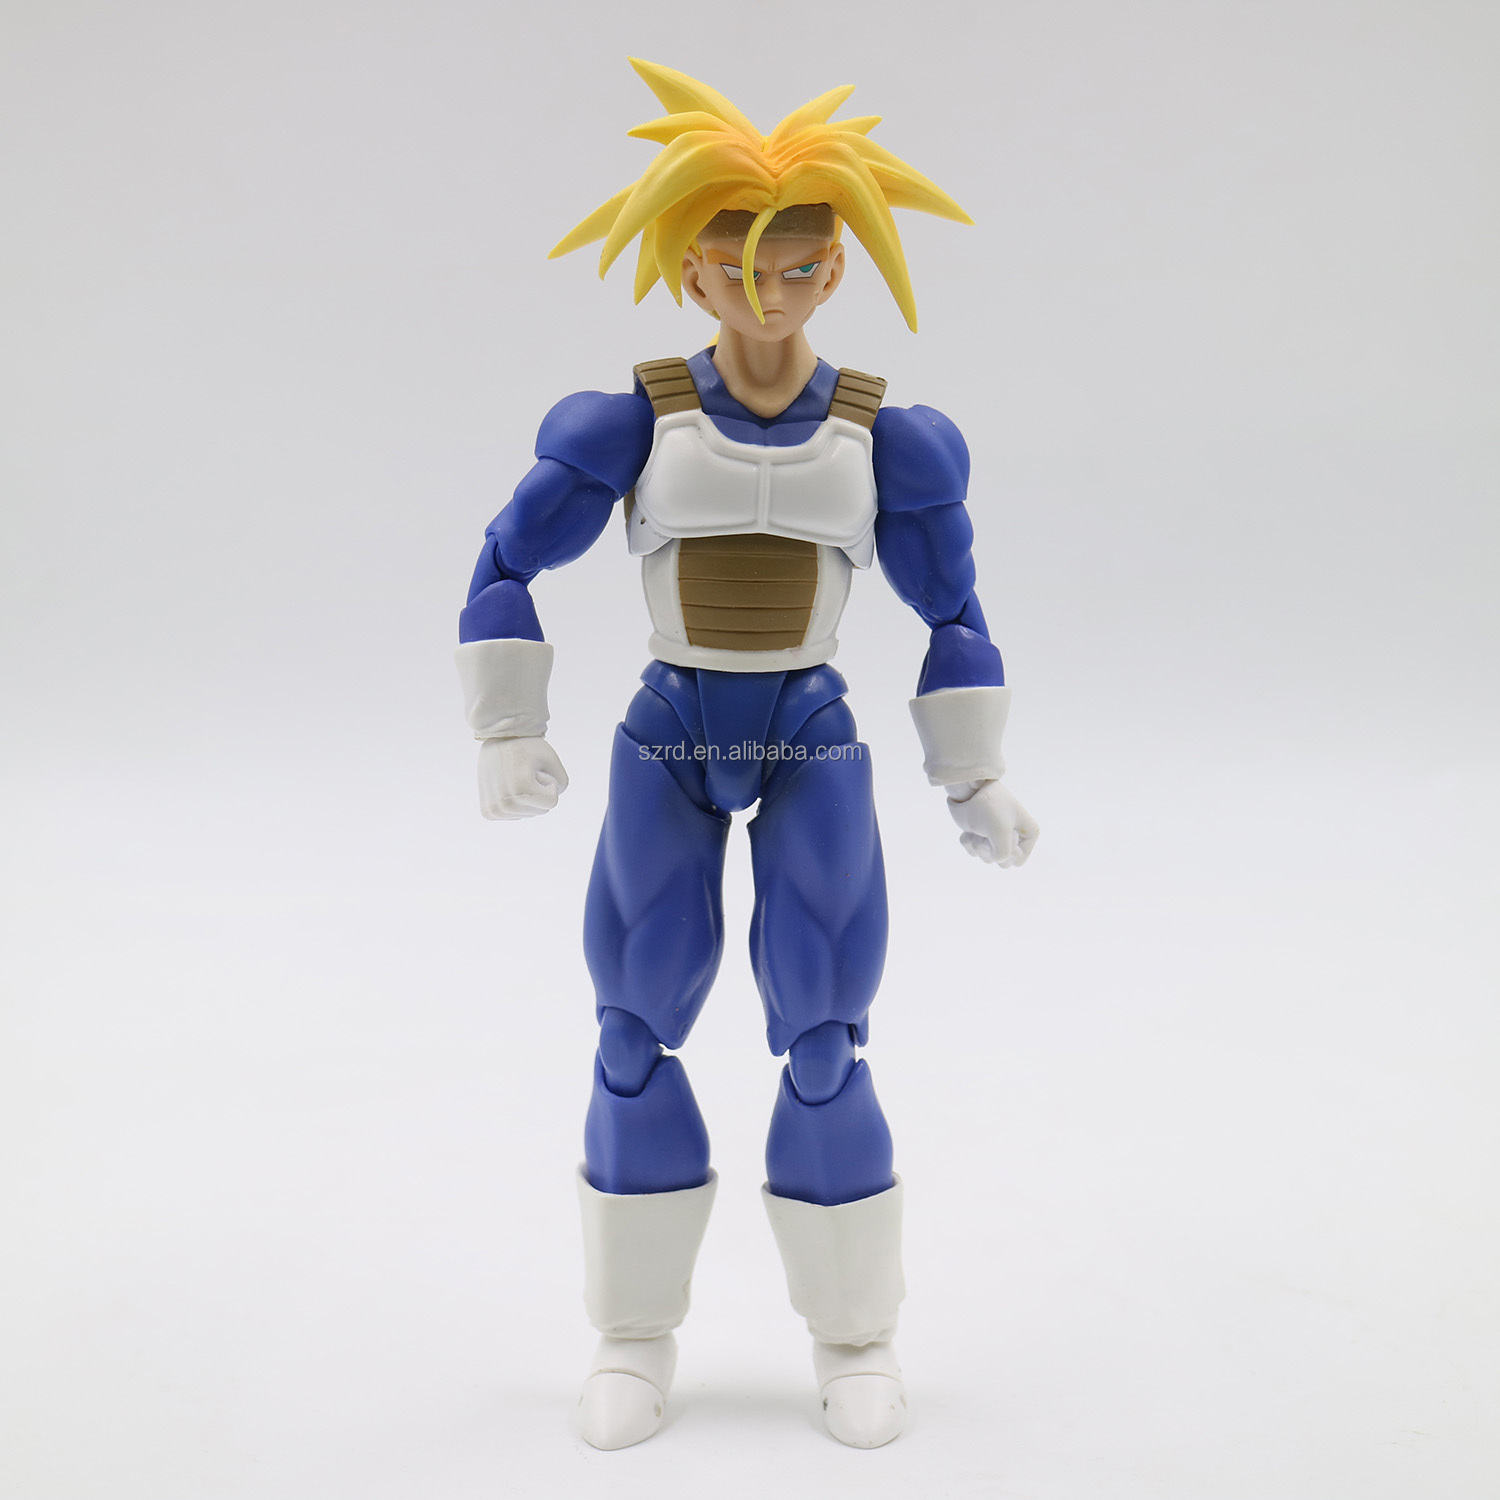 super saiyan gold garage kit/custom anime model toy/china factory direct sale